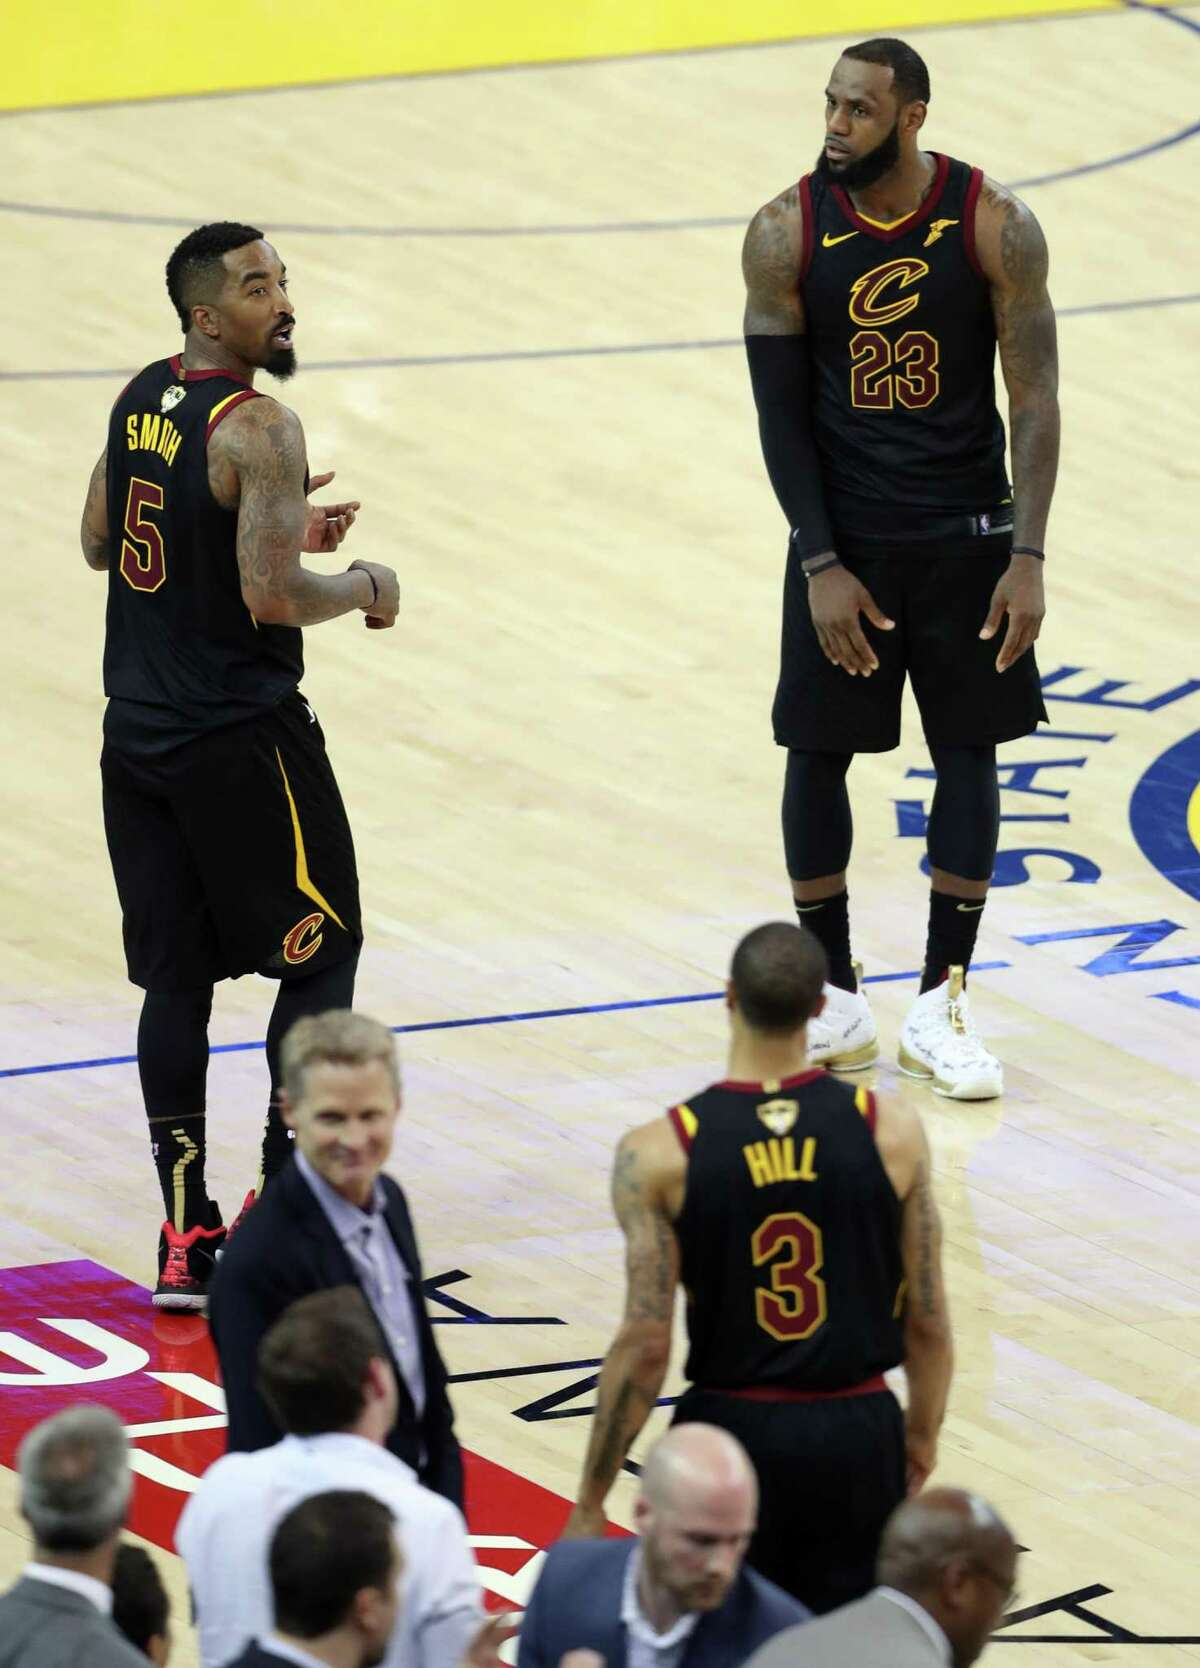 Cleveland Cavaliers' JR Smith and LeBron James react after Smith rebounded a missed free throw in final seconds but dribbled away from basket because he thought the Cavaliers had the lead during Golden State Warriors' 124-114 overtime win in Game 1 of the NBA Finals at Oracle Arena in Oakland, CA on Thursday, May 31, 2018.